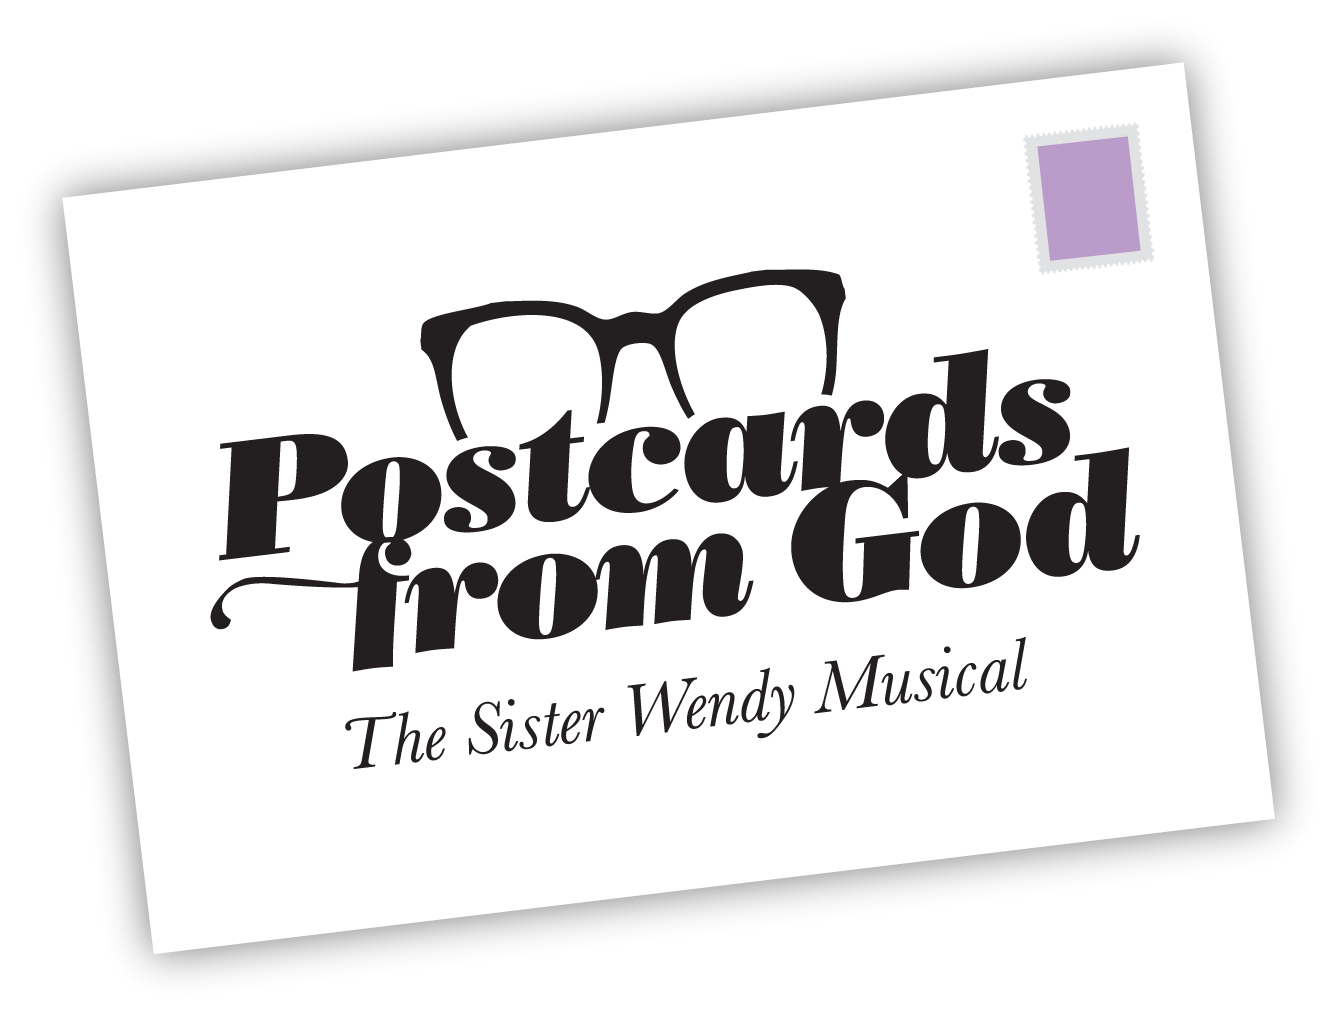 Postcards from God - The Sister Wendy Musical